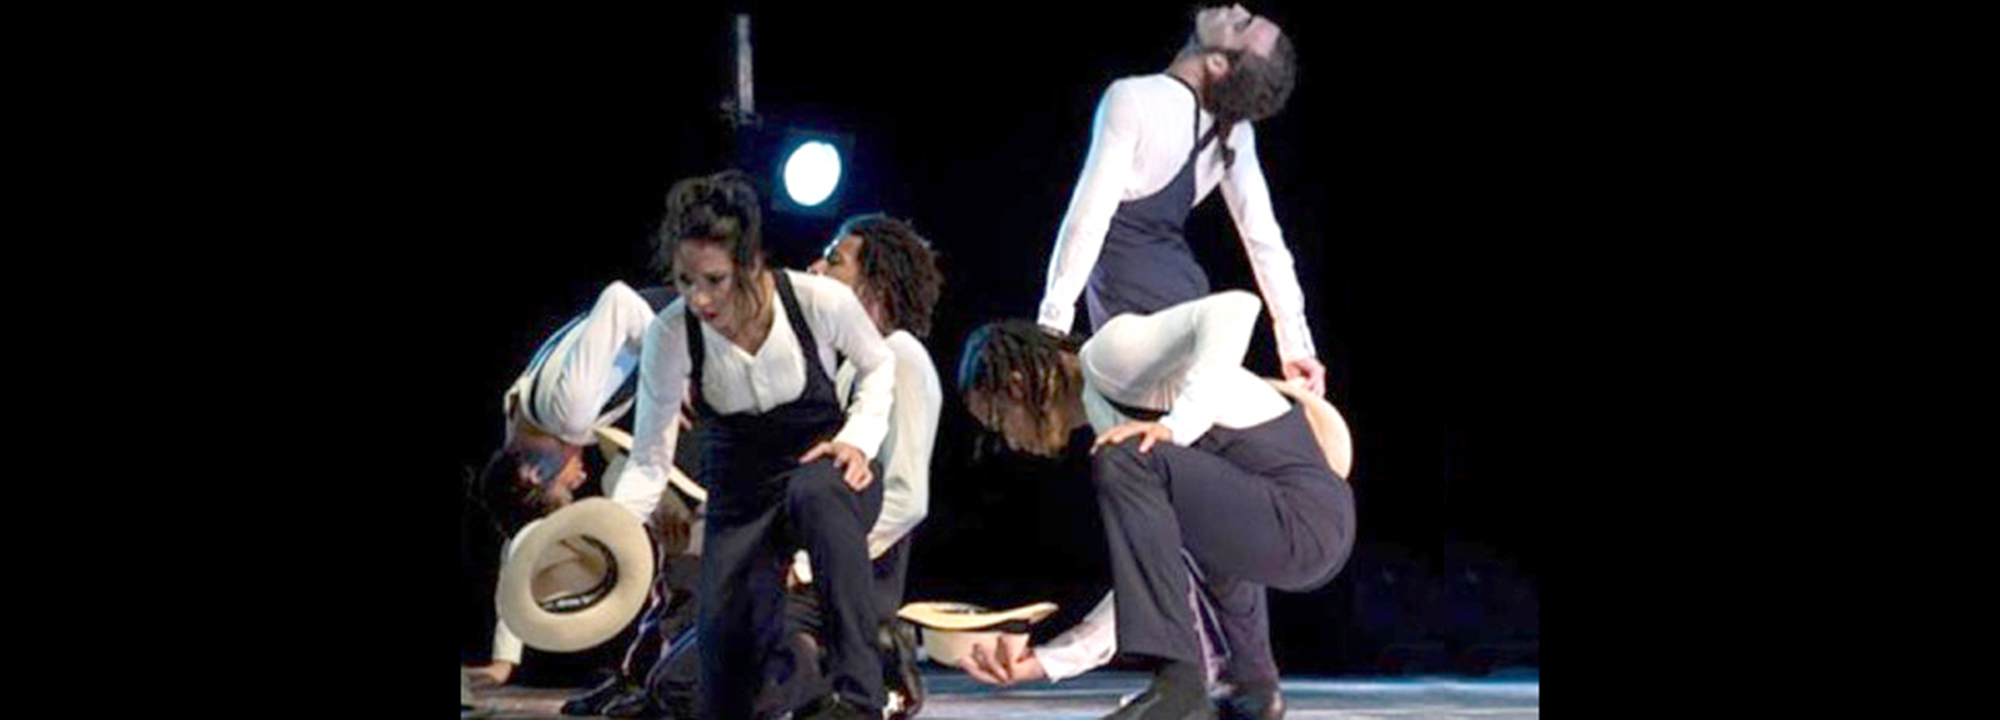 Malpaso Dance Company returns to The Joyce Theater March 3-8